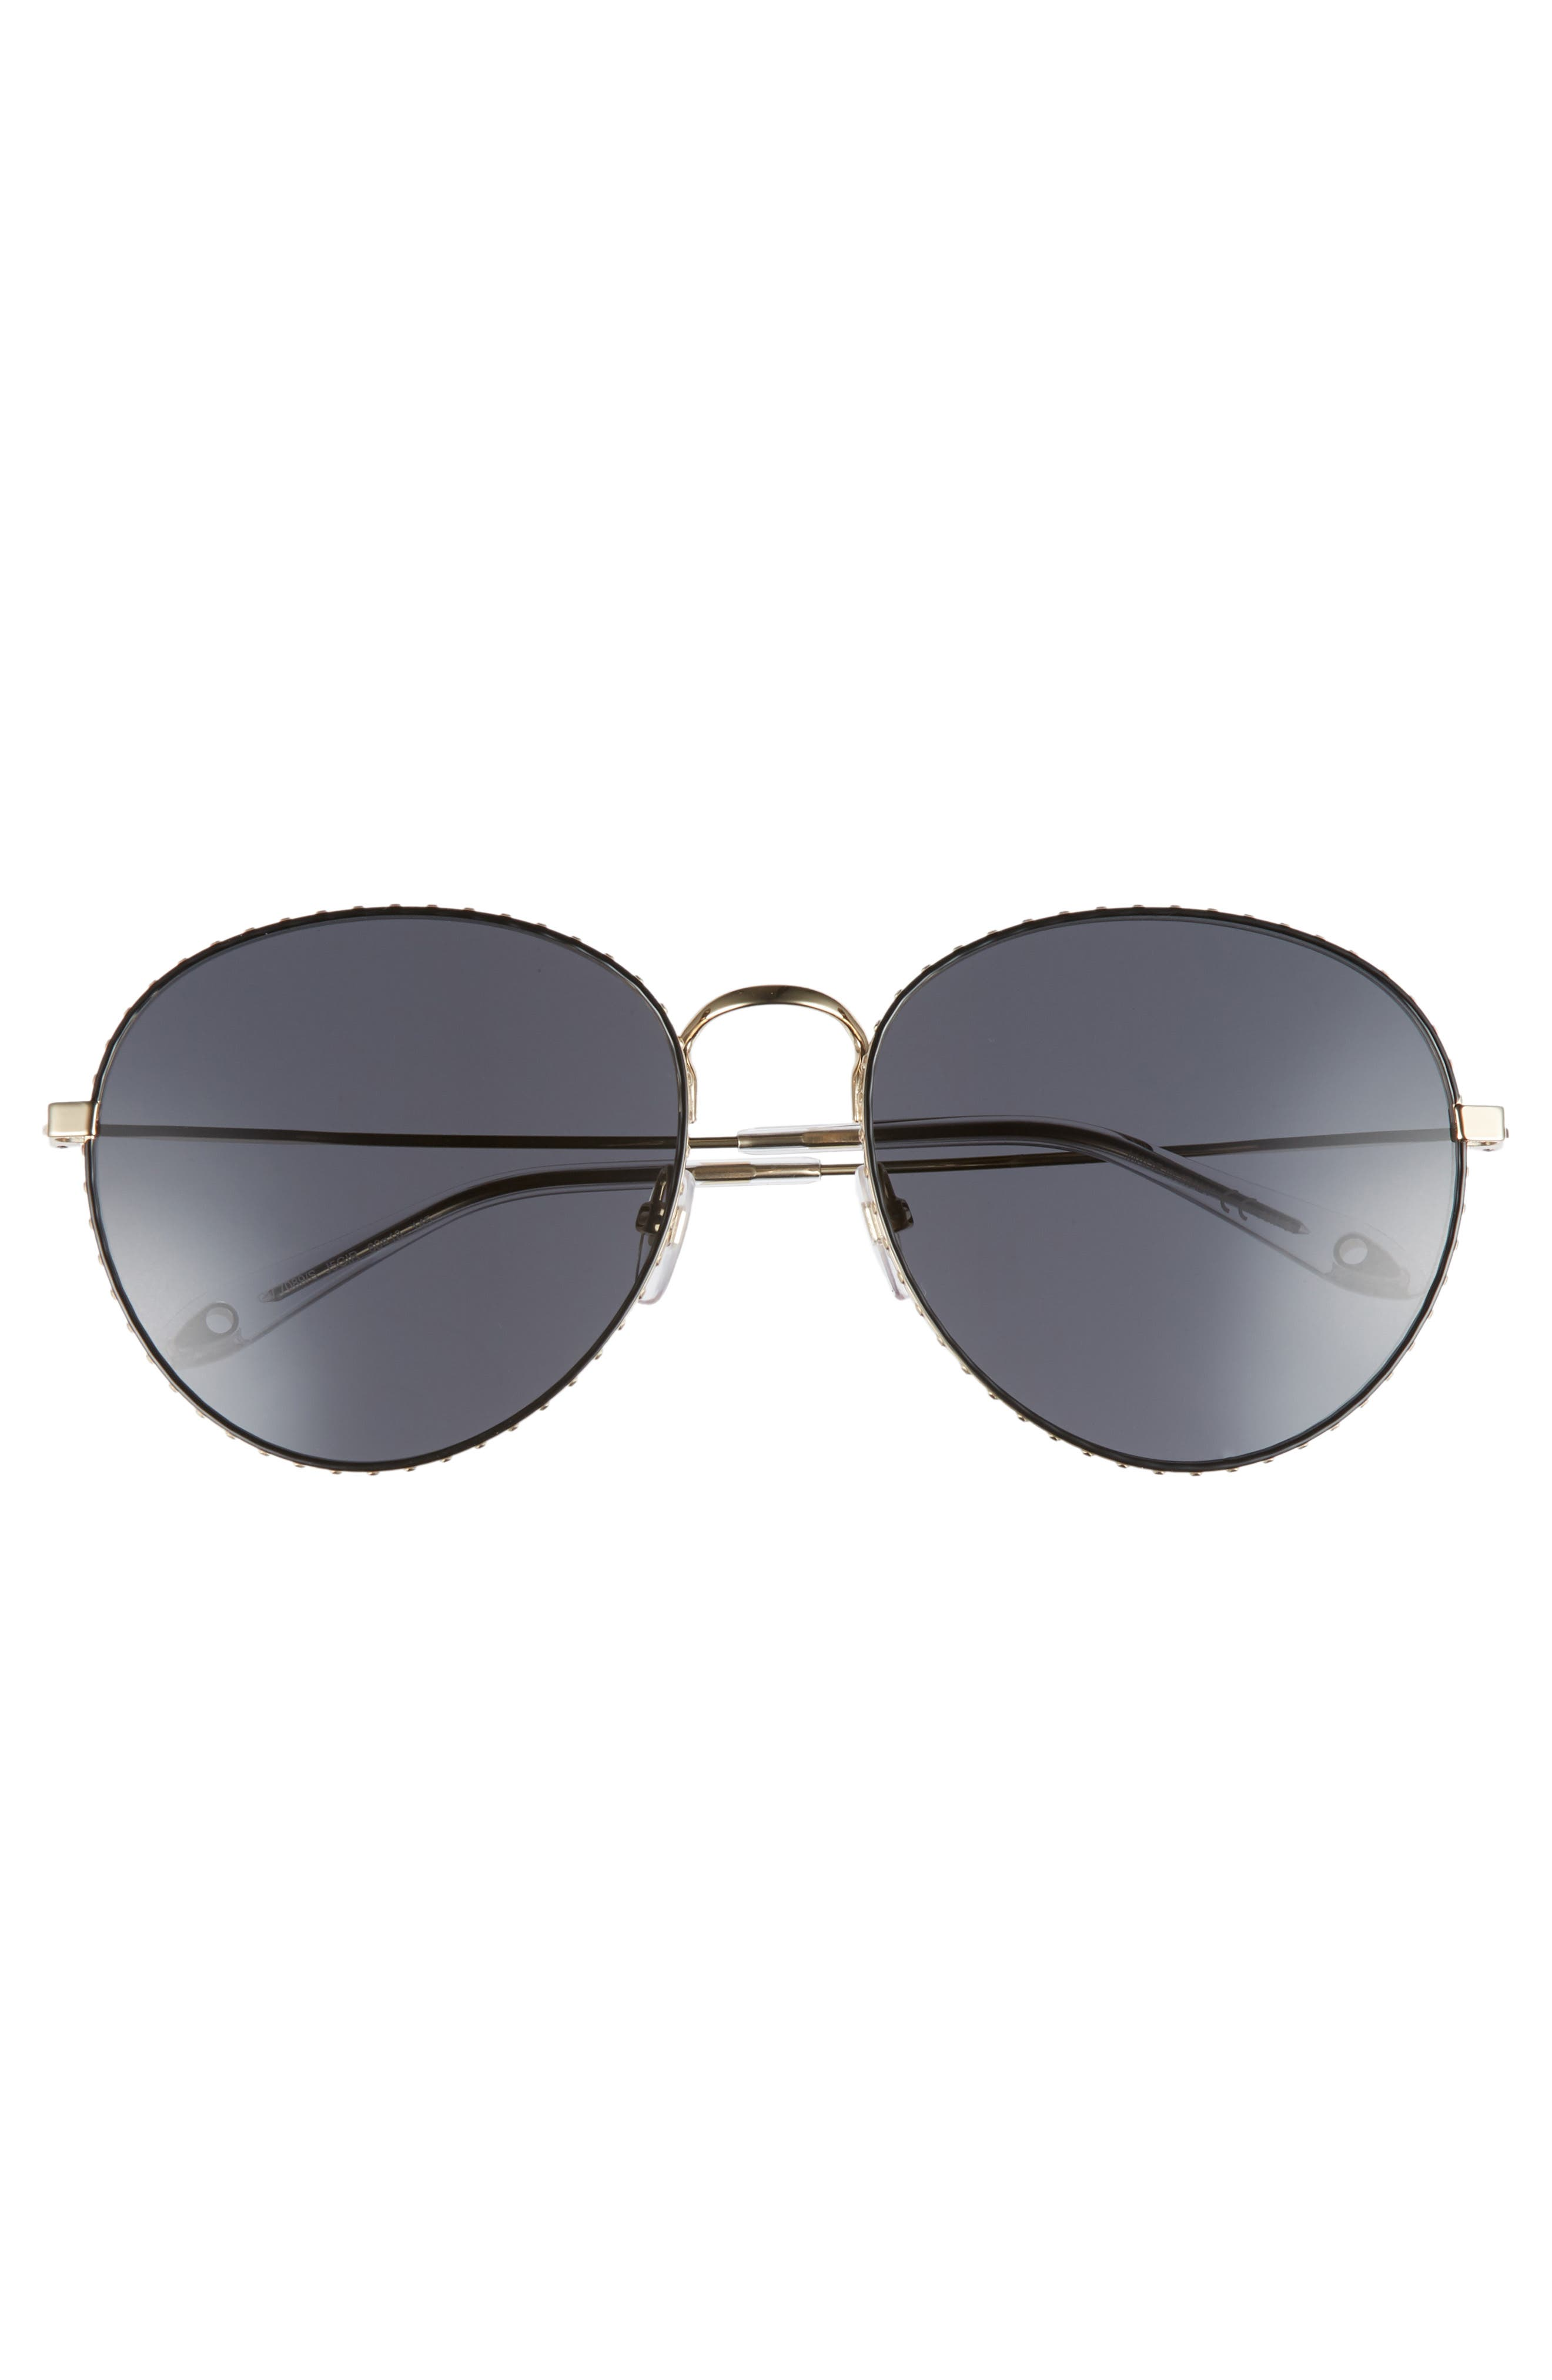 60mm Round Metal Sunglasses,                             Alternate thumbnail 3, color,                             GOLD